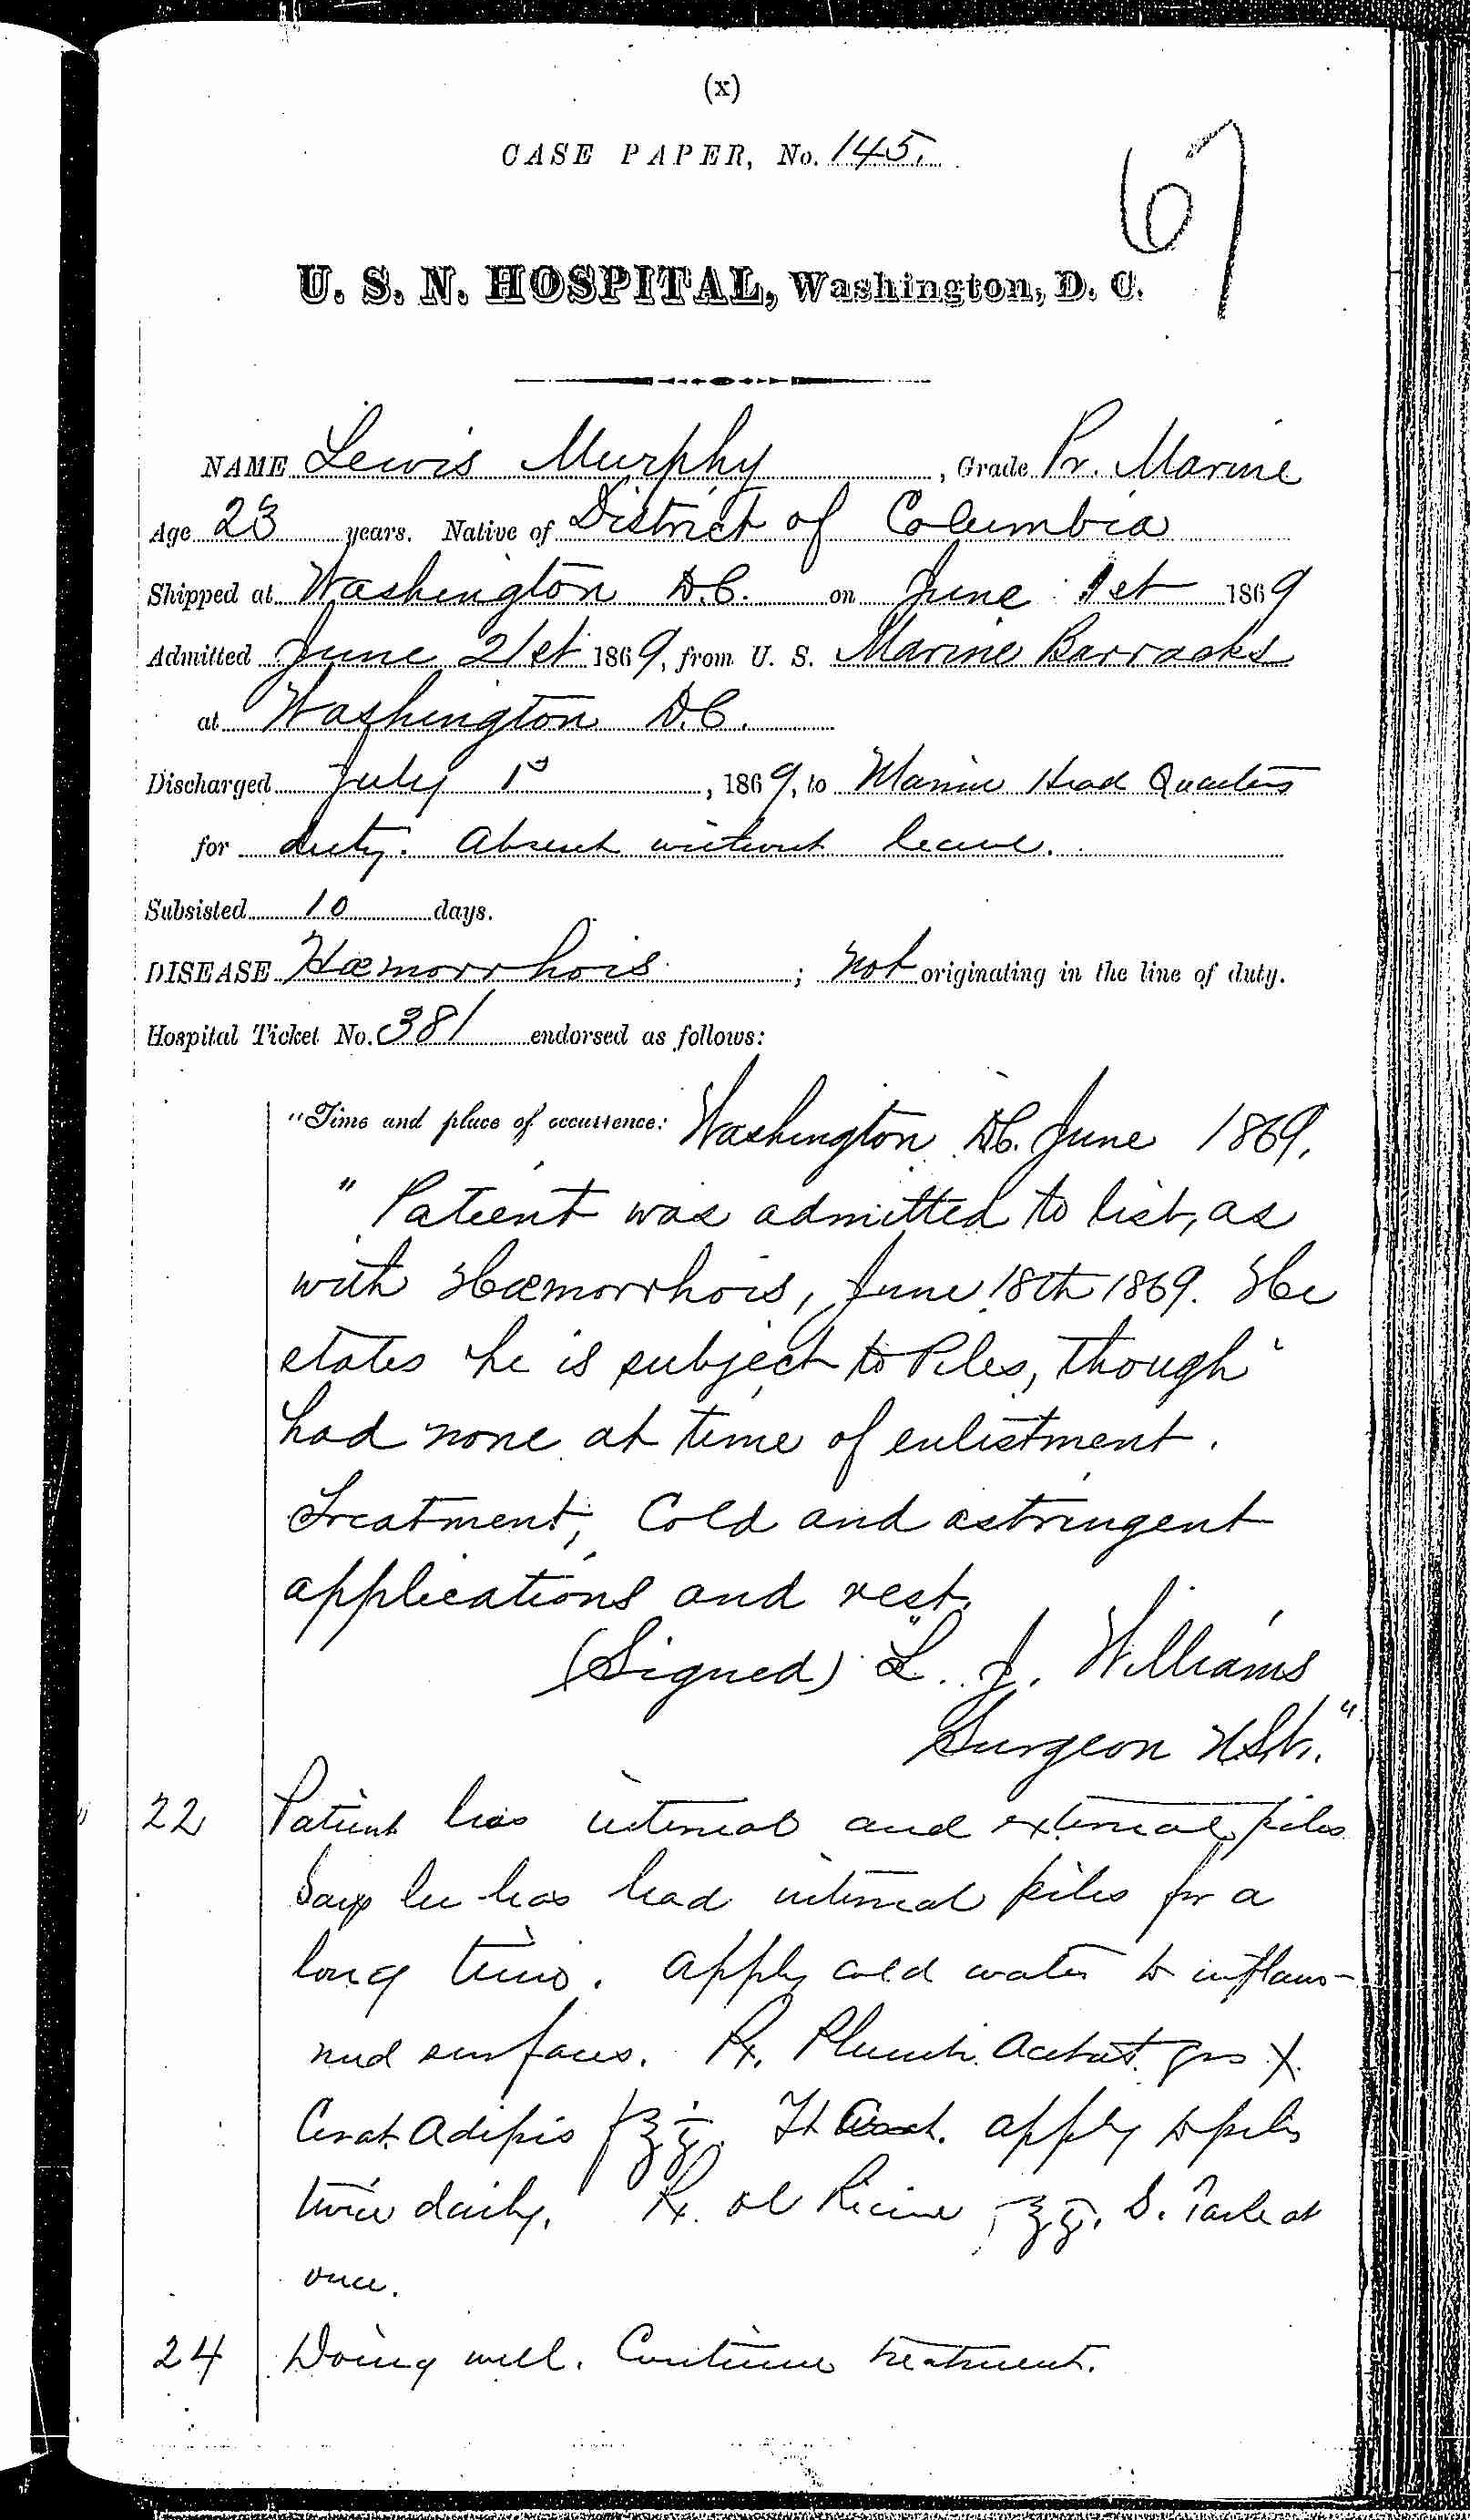 Entry for Lewis Murphy (page 1 of 2) in the log Hospital Tickets and Case Papers - Naval Hospital - Washington, D.C. - 1868-69